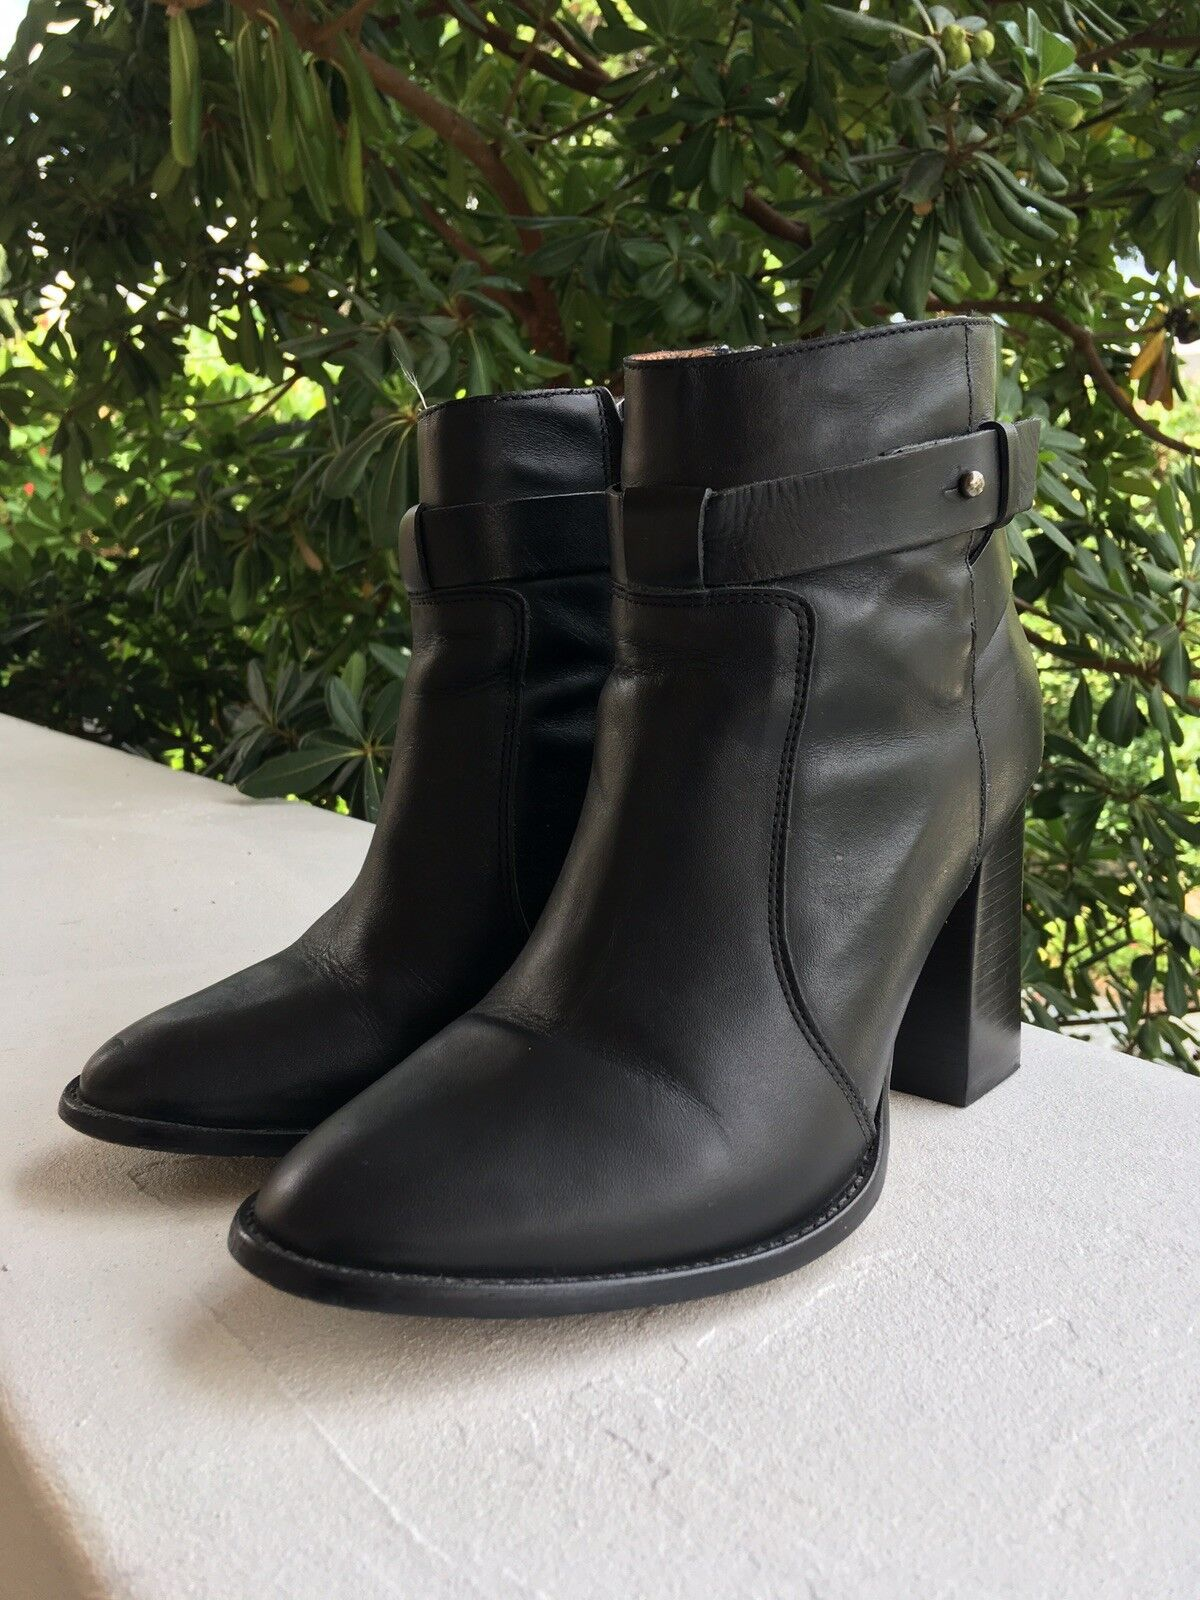 """Madewell Women's Black Leather Ankle Boots, Size 9 (US), 3.5"""" Heel"""